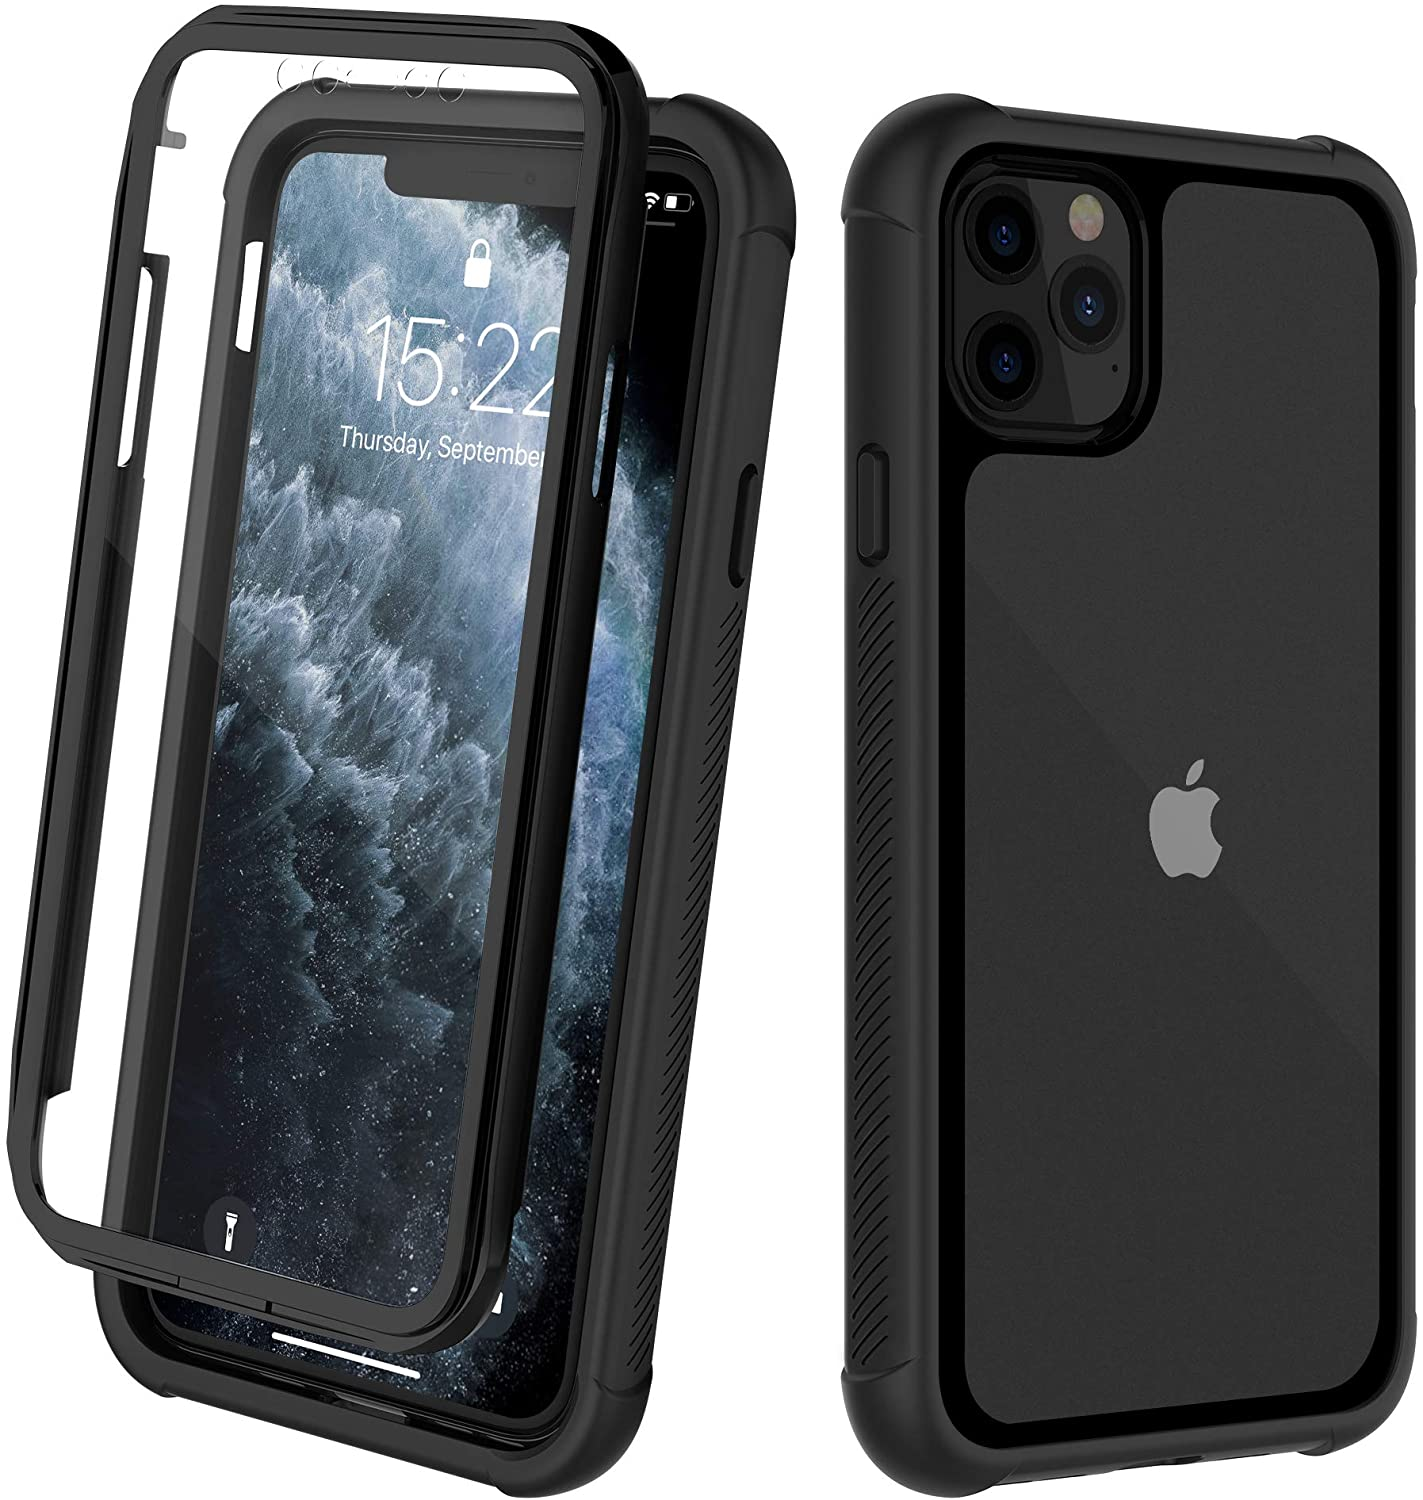 ORDTBY iPhone 11 Pro Max Case, Full-Body Heavy-Duty Protection with Built-in Screen Bumper Protector 360 Protective Shockproof Rugged Cover for iPhone 11 Pro Max (6.5 inch)